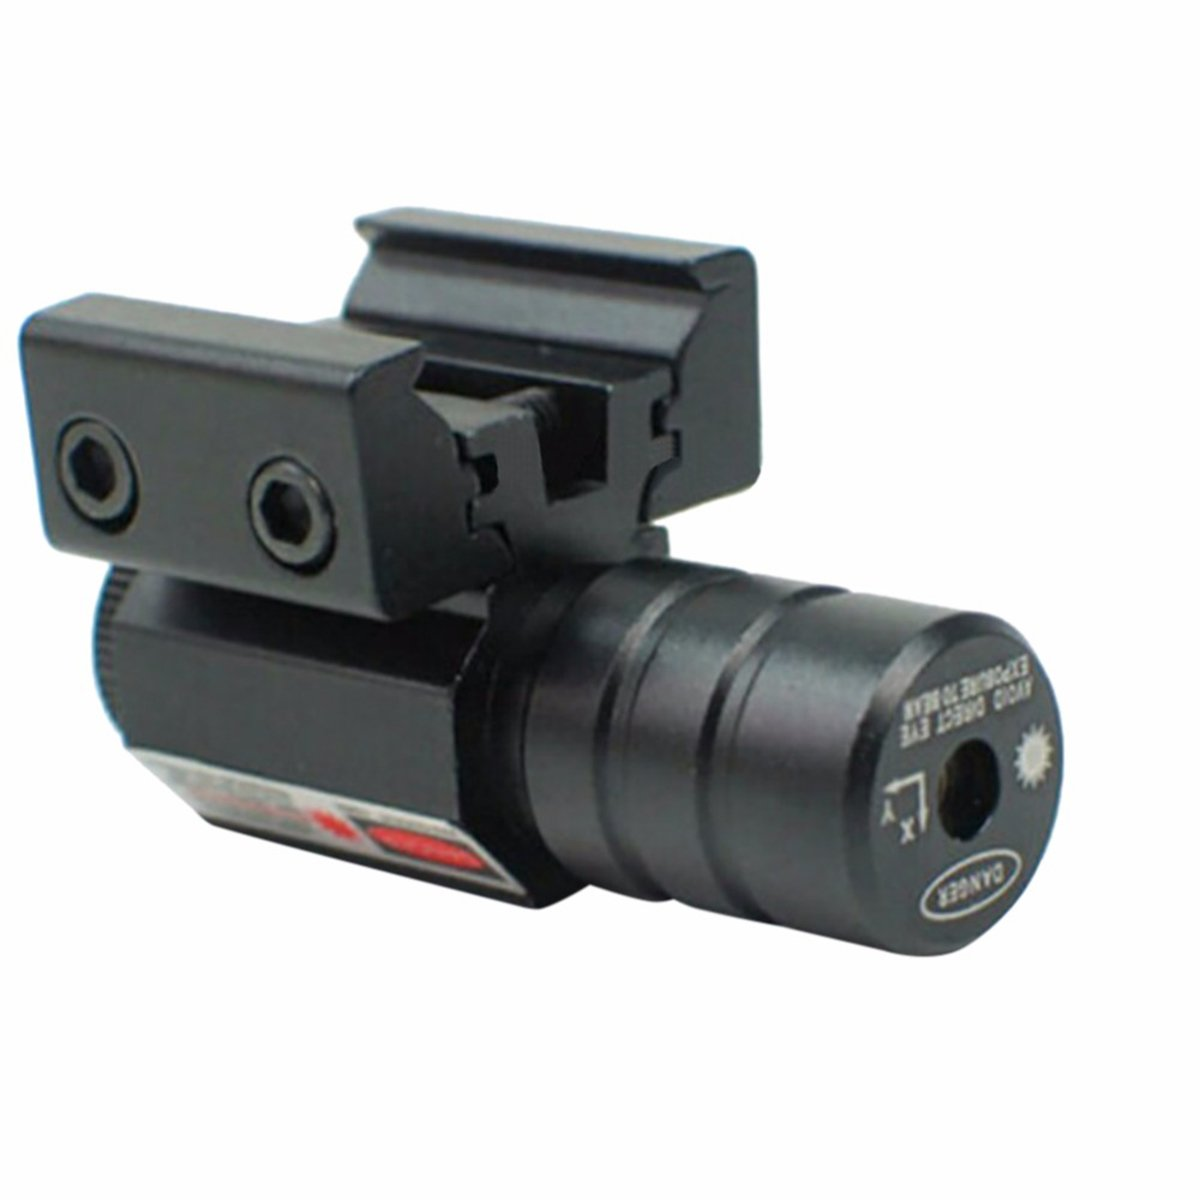 50-100M Range Adjustable Red Dot Laser